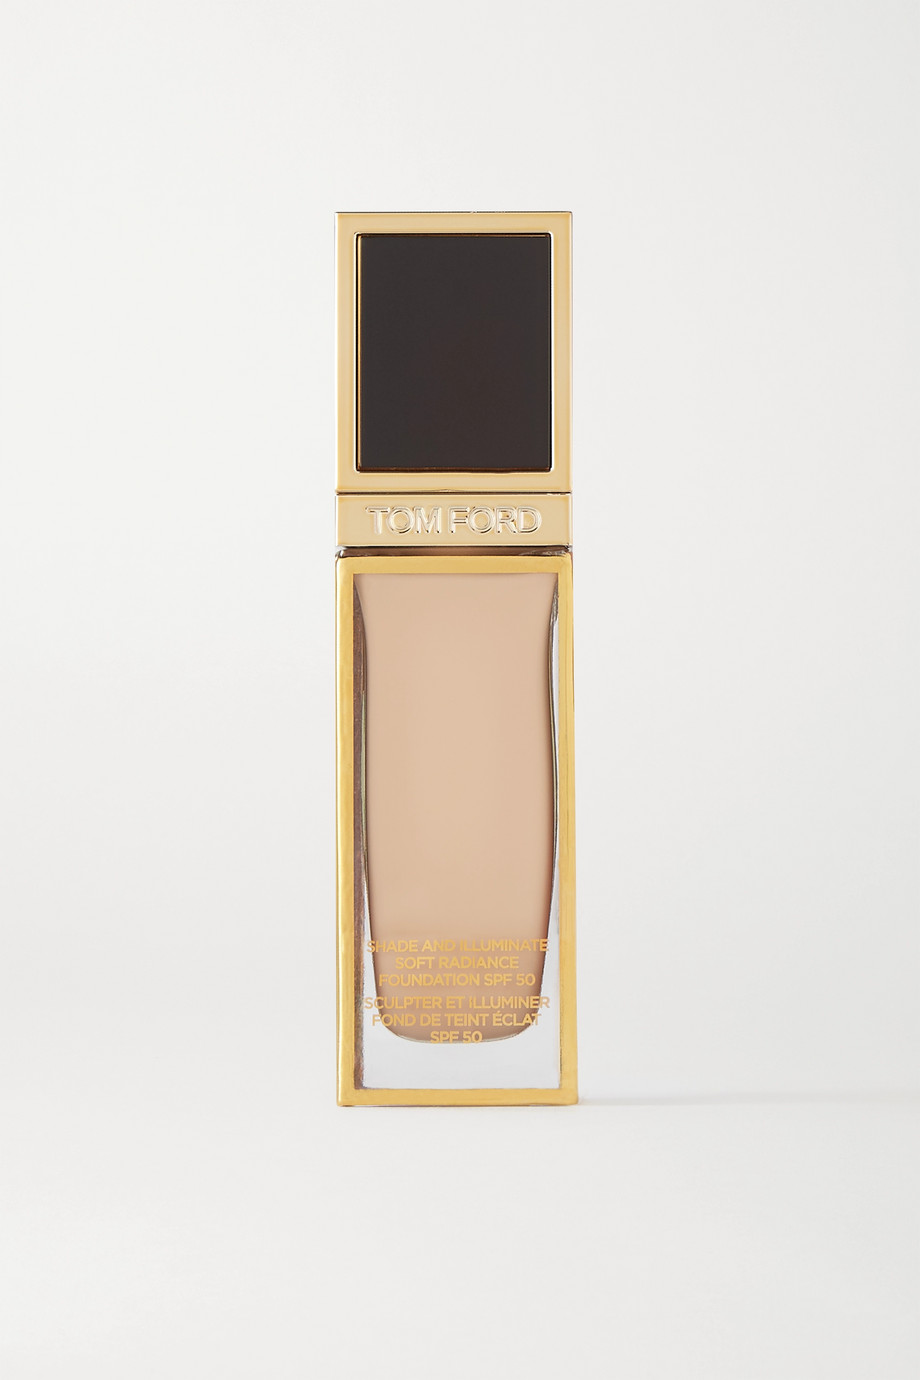 TOM FORD BEAUTY Shade and Illuminate Soft Radiance Foundation SPF50 - 2.5 Linen, 30ml